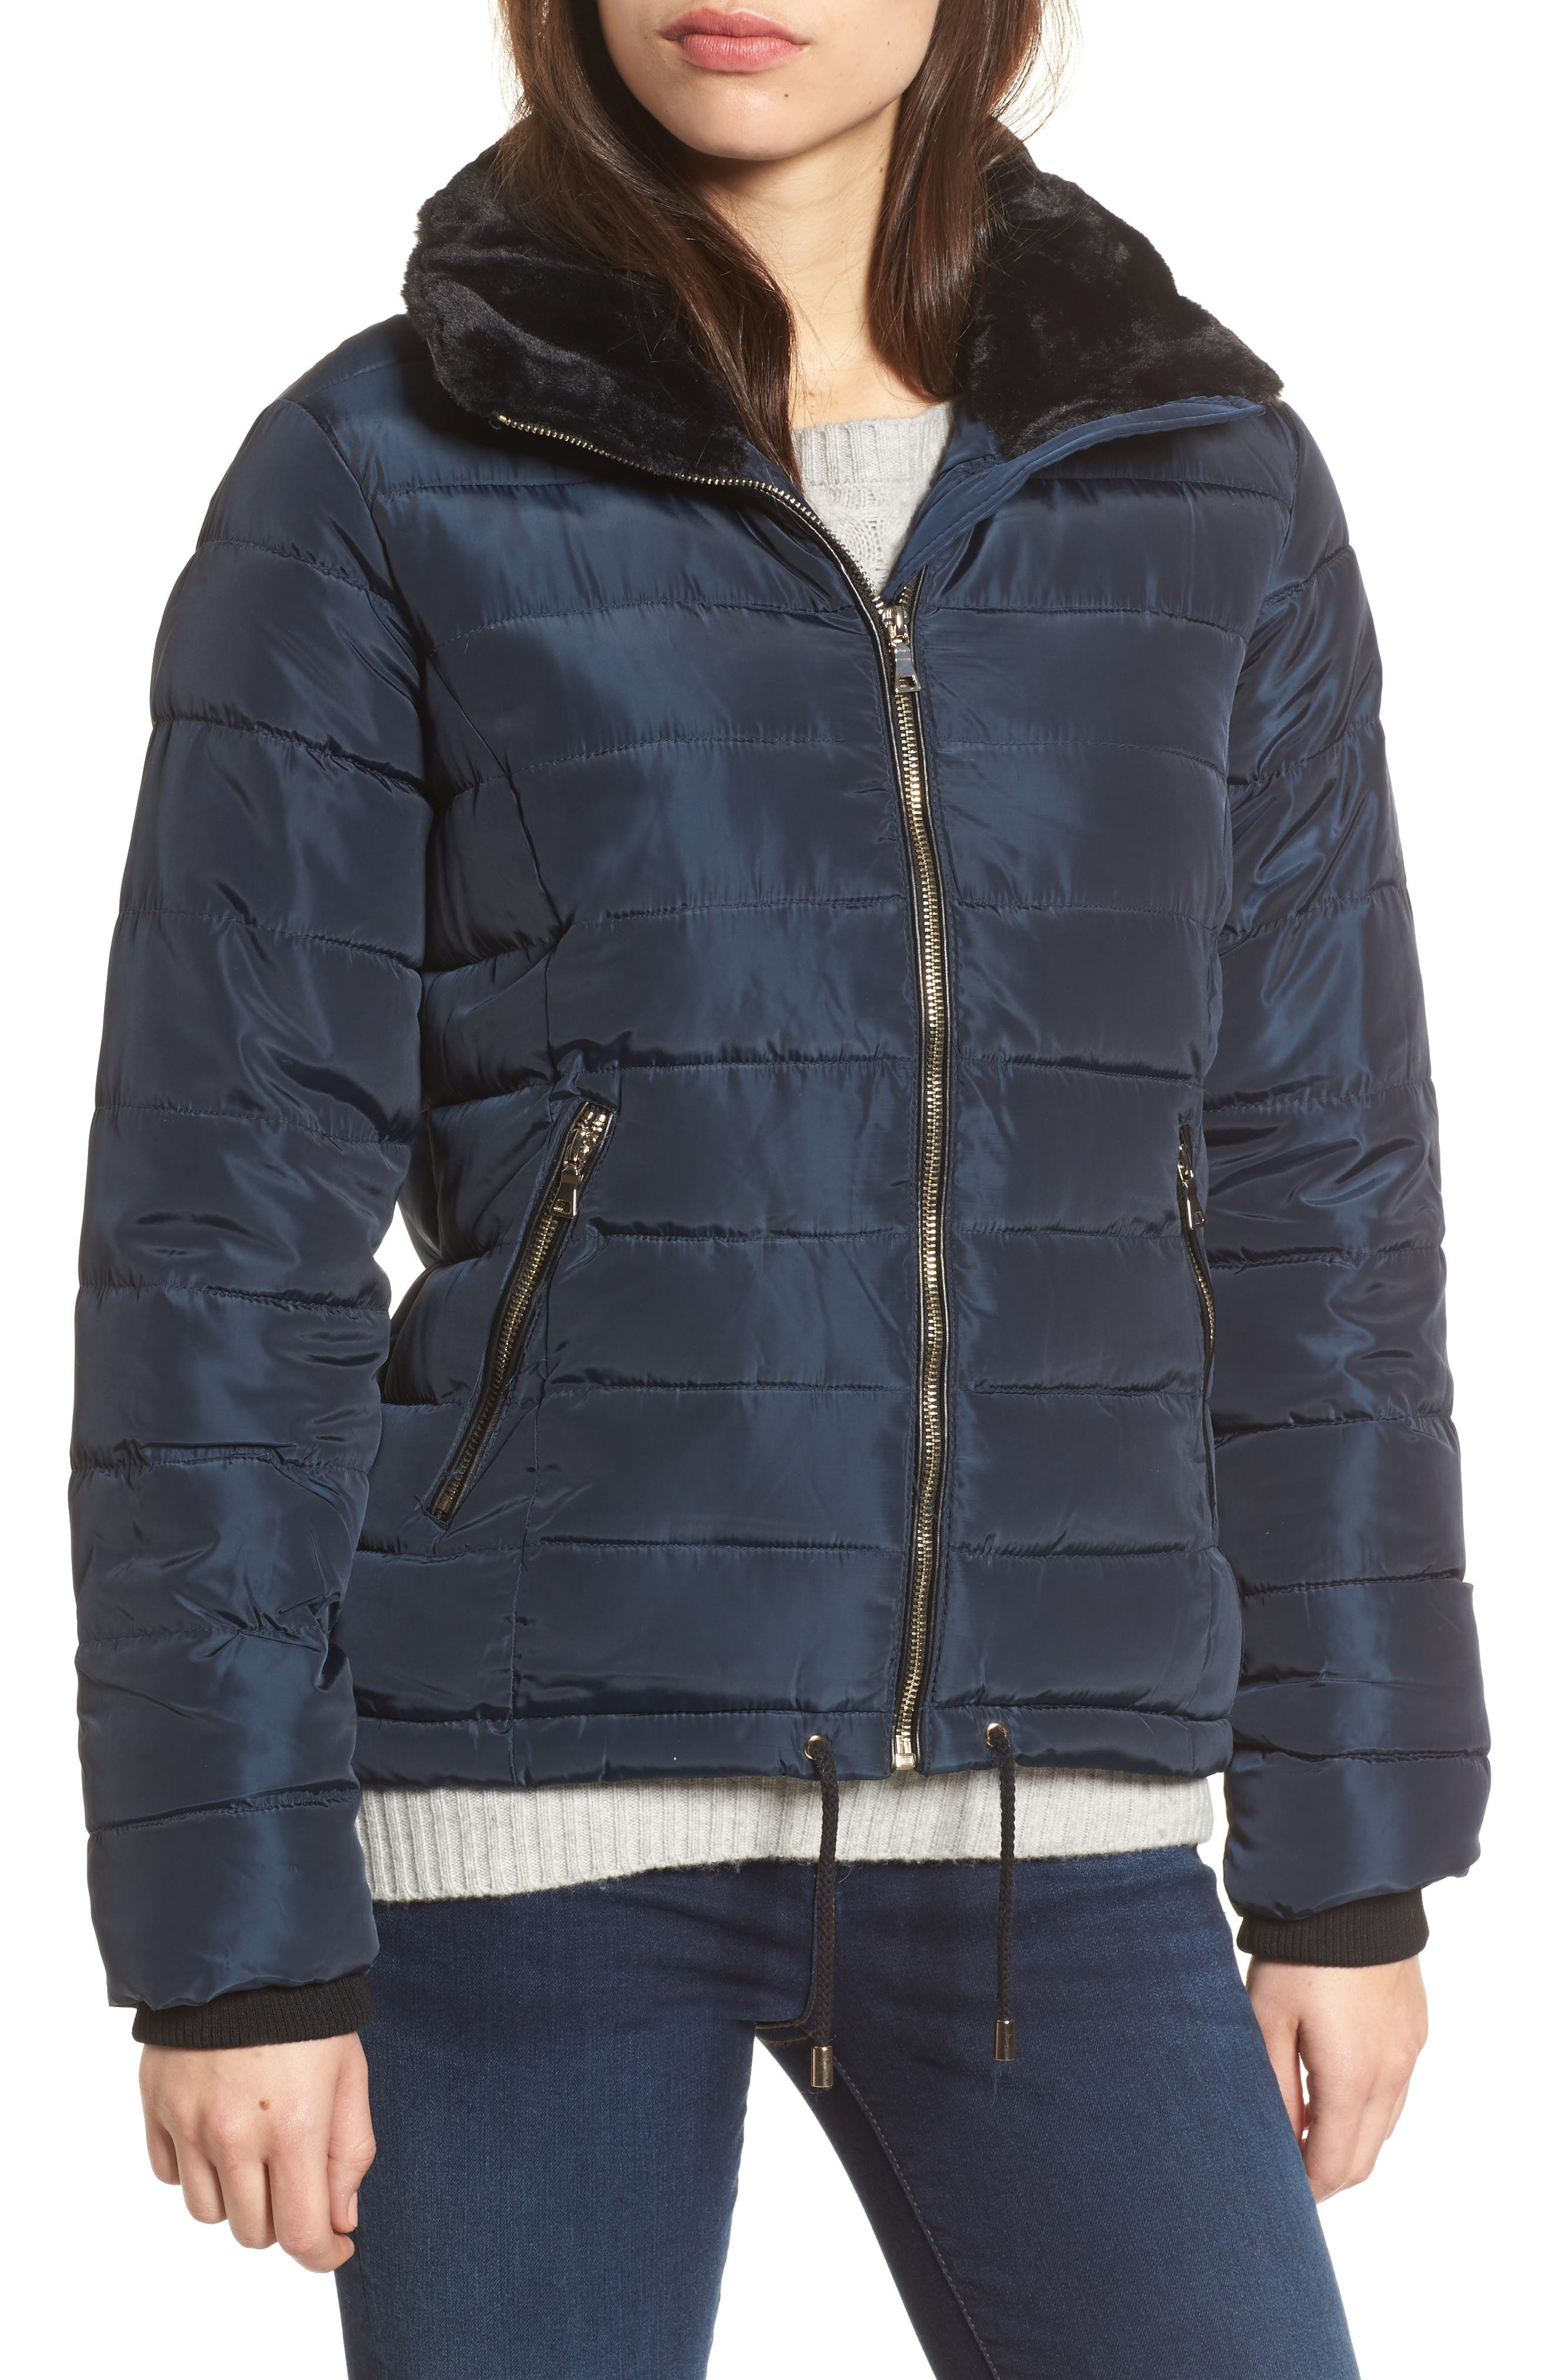 Puffer Jacket with Faux Fur Collar Lining,                             Alternate thumbnail 4, color,                             Navy Blue